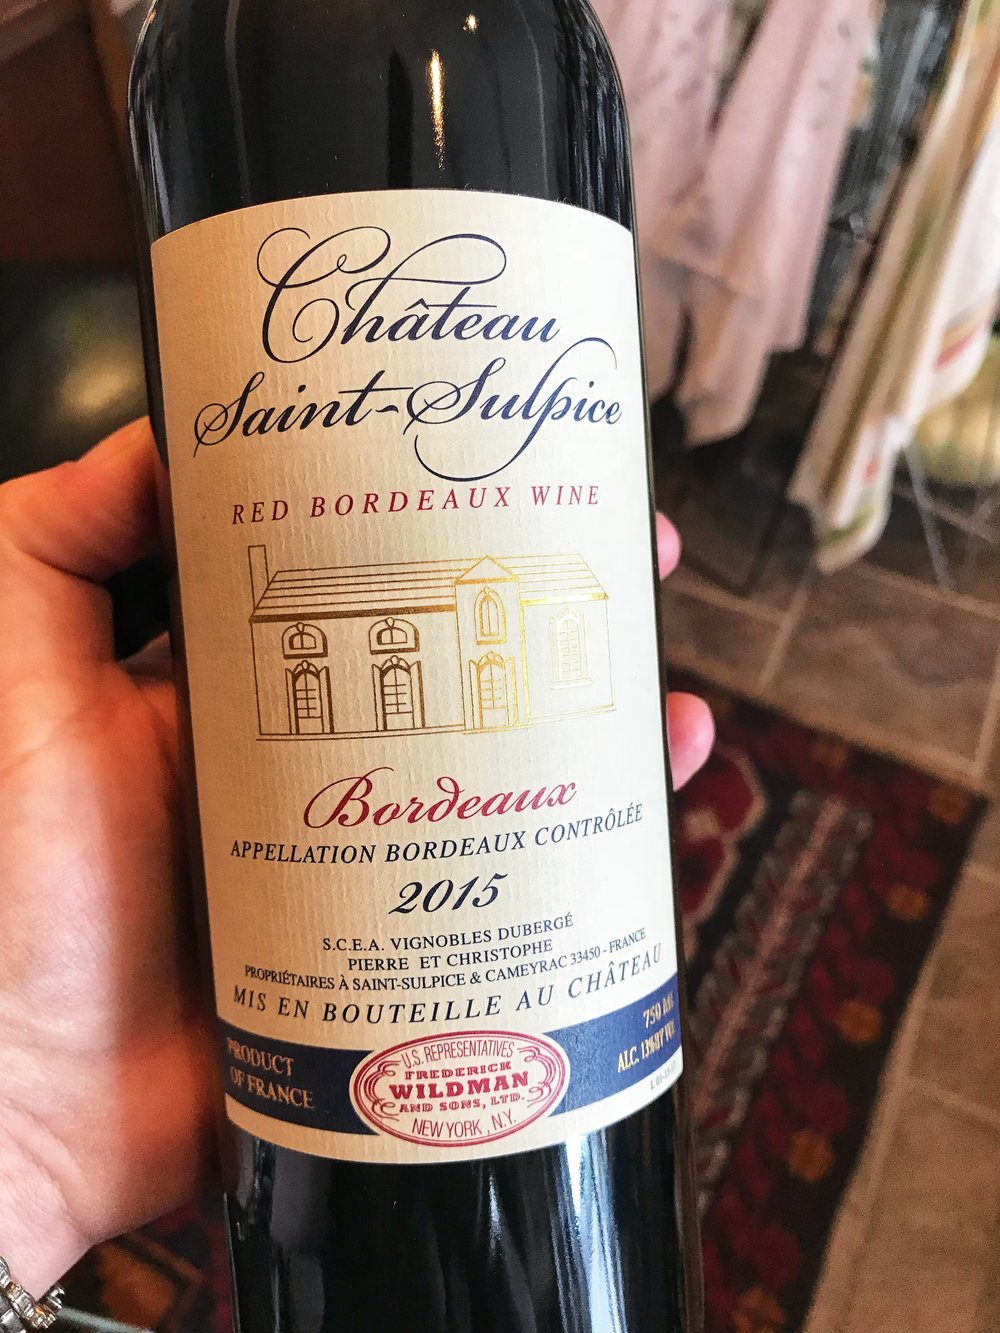 "2015 Chateau Saint-Sulpice, Bordeaux: When the vintage is as outstanding as 2015...there are values to be found!   This wine is vinified as if it were a ""classified growth"": complete de-stemming, eight-day fermentation in new temperature-controlled stainless steel tanks and aging in vats for several months before bottling. This approach emphasizes the natural red fruit characters. The wine exhibits black cherry, spice and plum notes, with great depth and balance.  Blend: 70% Merlot, 20% Cabernet Sauvignon, 10% Cabernet Franc"